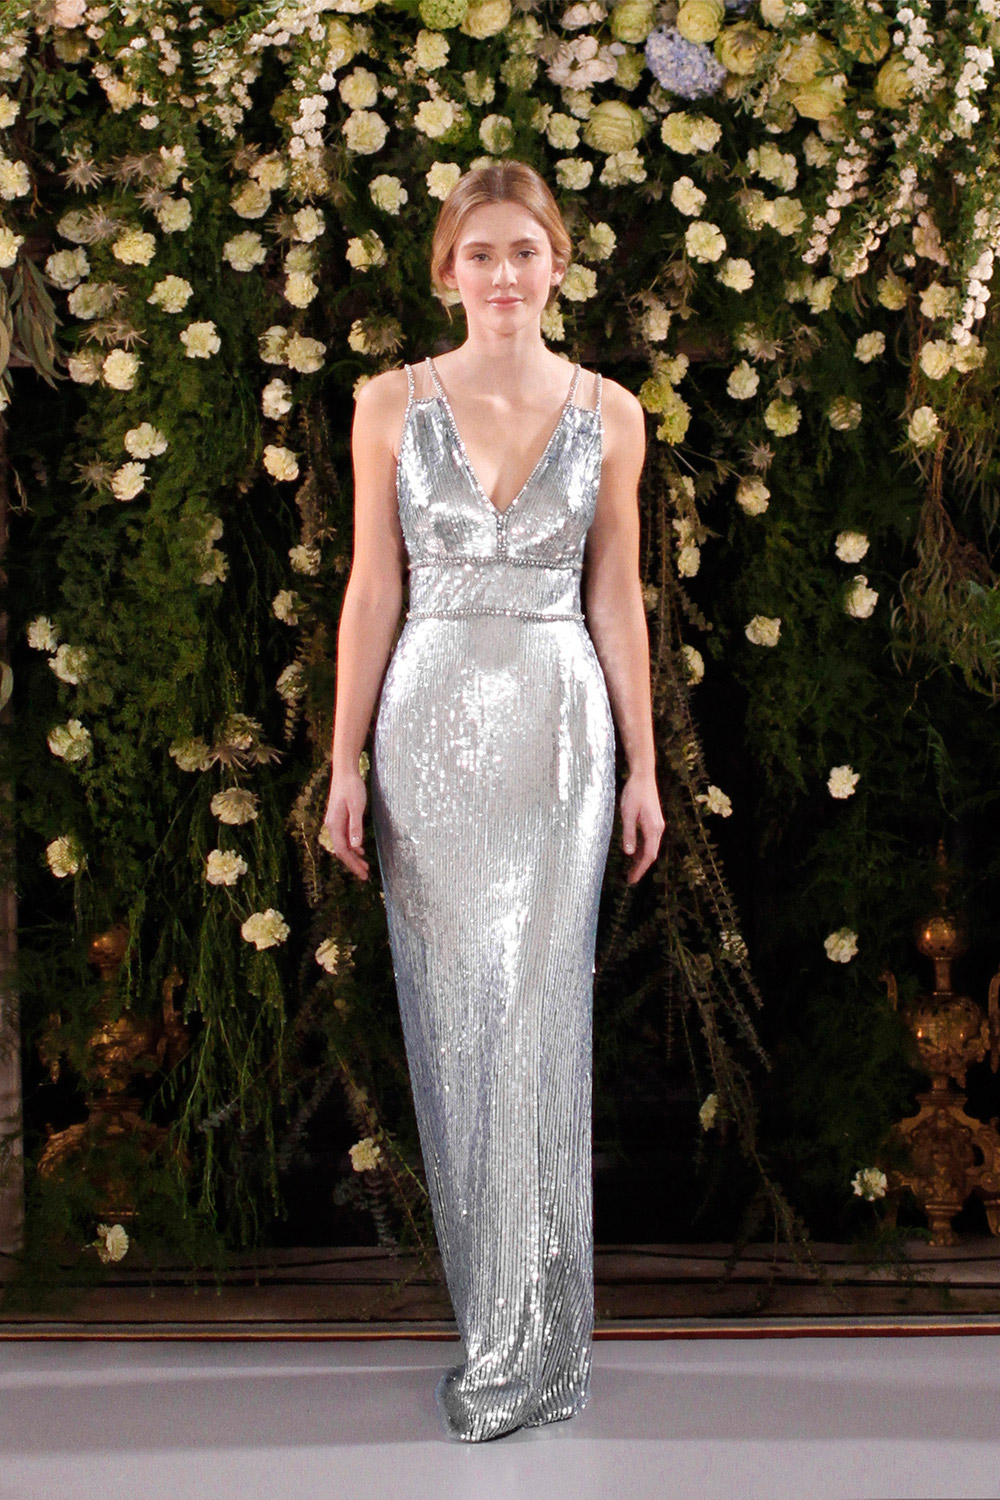 Jasmine – Jenny Packham 2019 Bridal Collection. www.theweddingnotebook.com